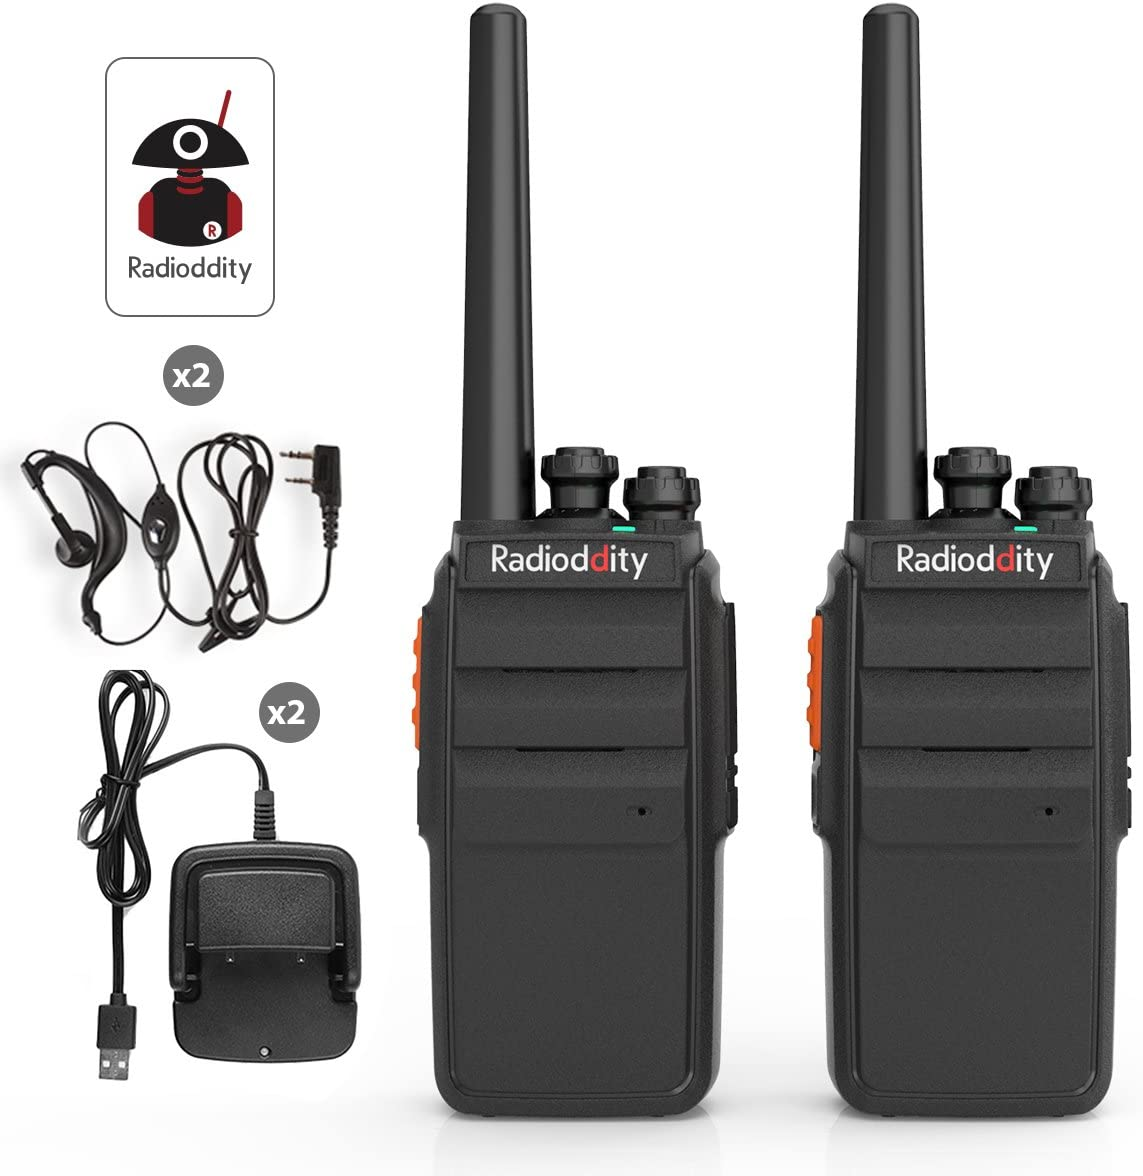 Radioddity R2 Long Range Walkie Talkie UHF Two Way Radio Rechargeable Scrambler Perfect for Survival Camping Hunting with USB Desktop Charger Earpiece 2 Pack